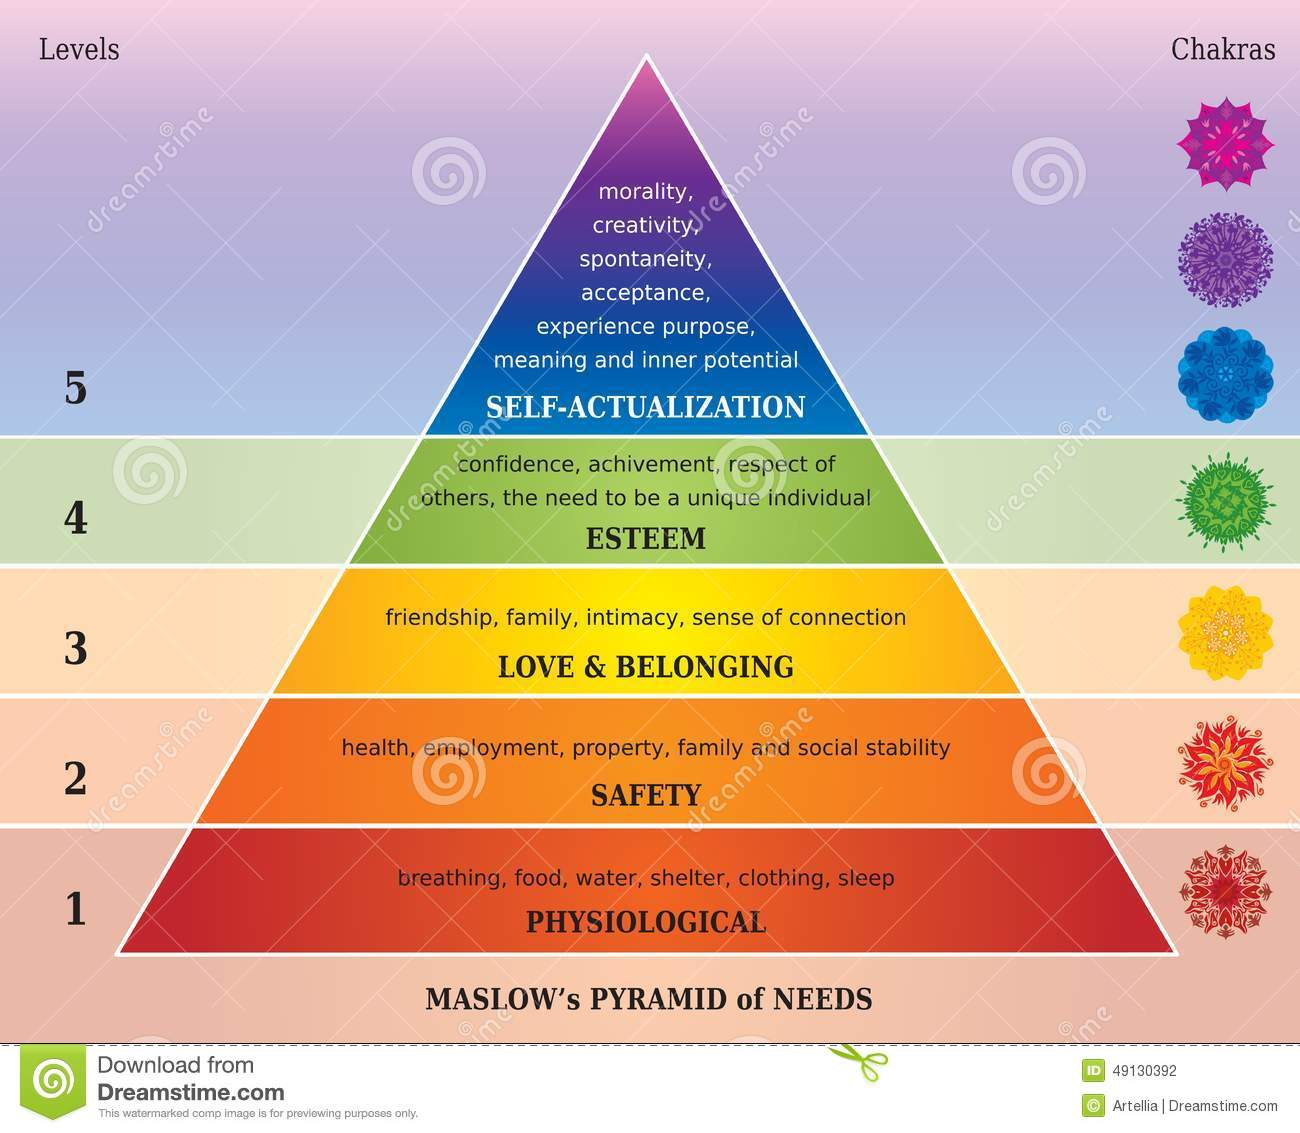 Chakra Diagram | Maslows Pyramid Of Needs Diagram With Chakras In Rainbow Colors